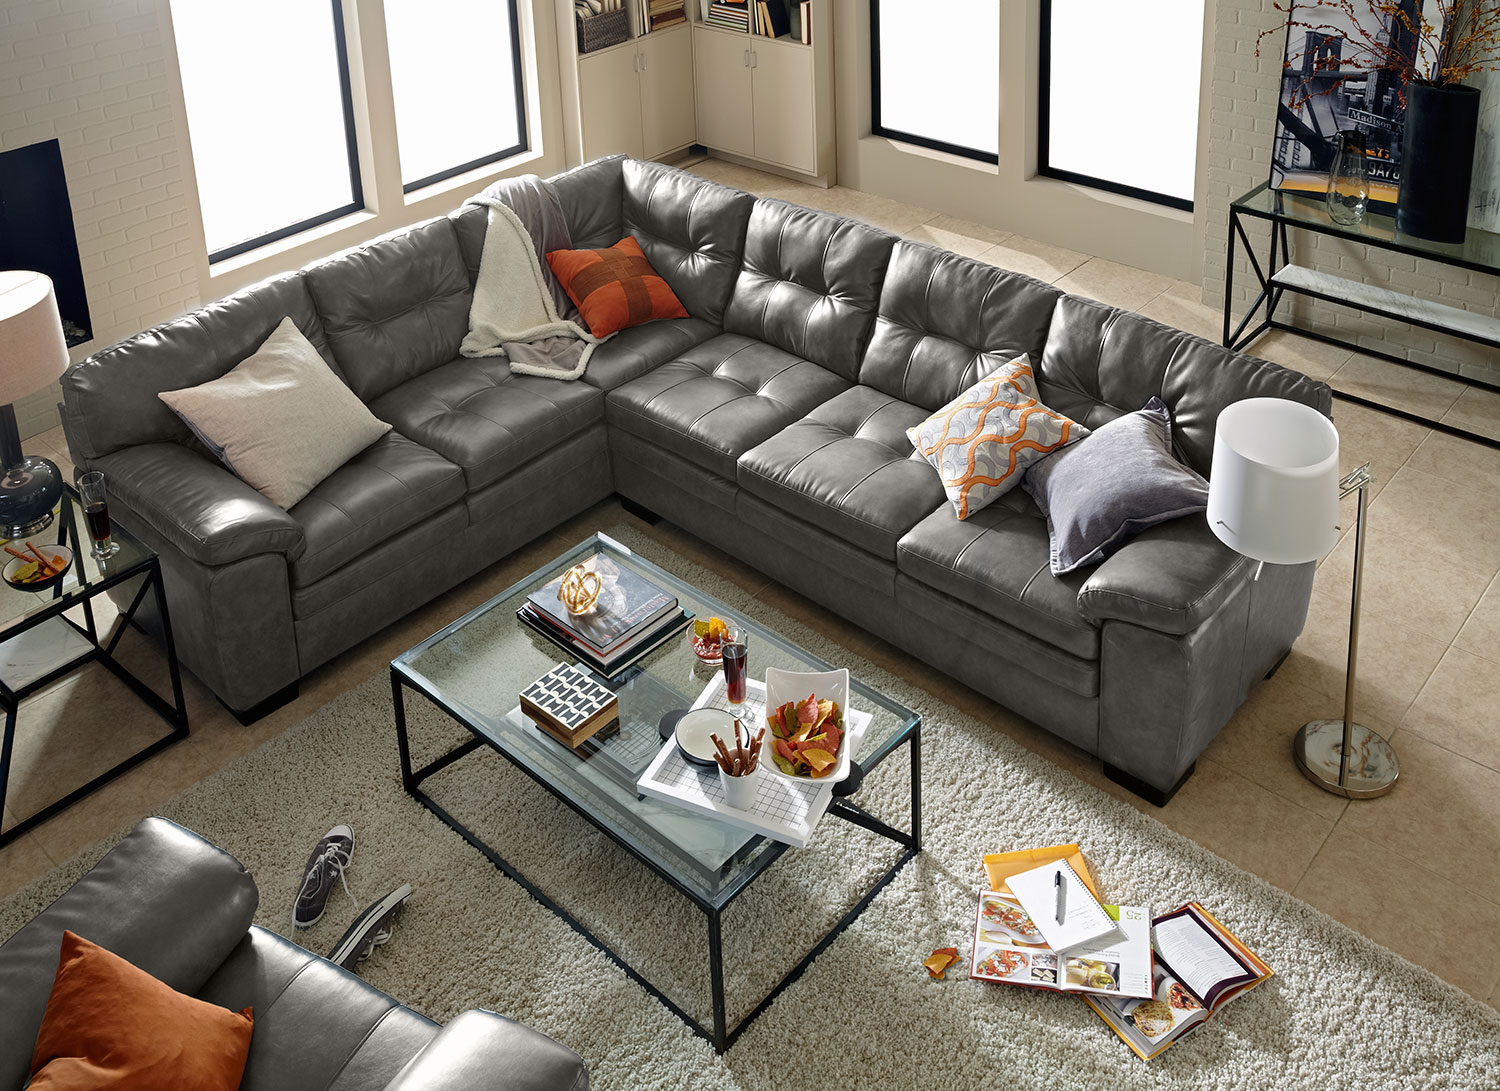 Magnum 2-Piece Sectional and Chair Set - Gray by Factory Outlet : value city leather sectionals - Sectionals, Sofas & Couches